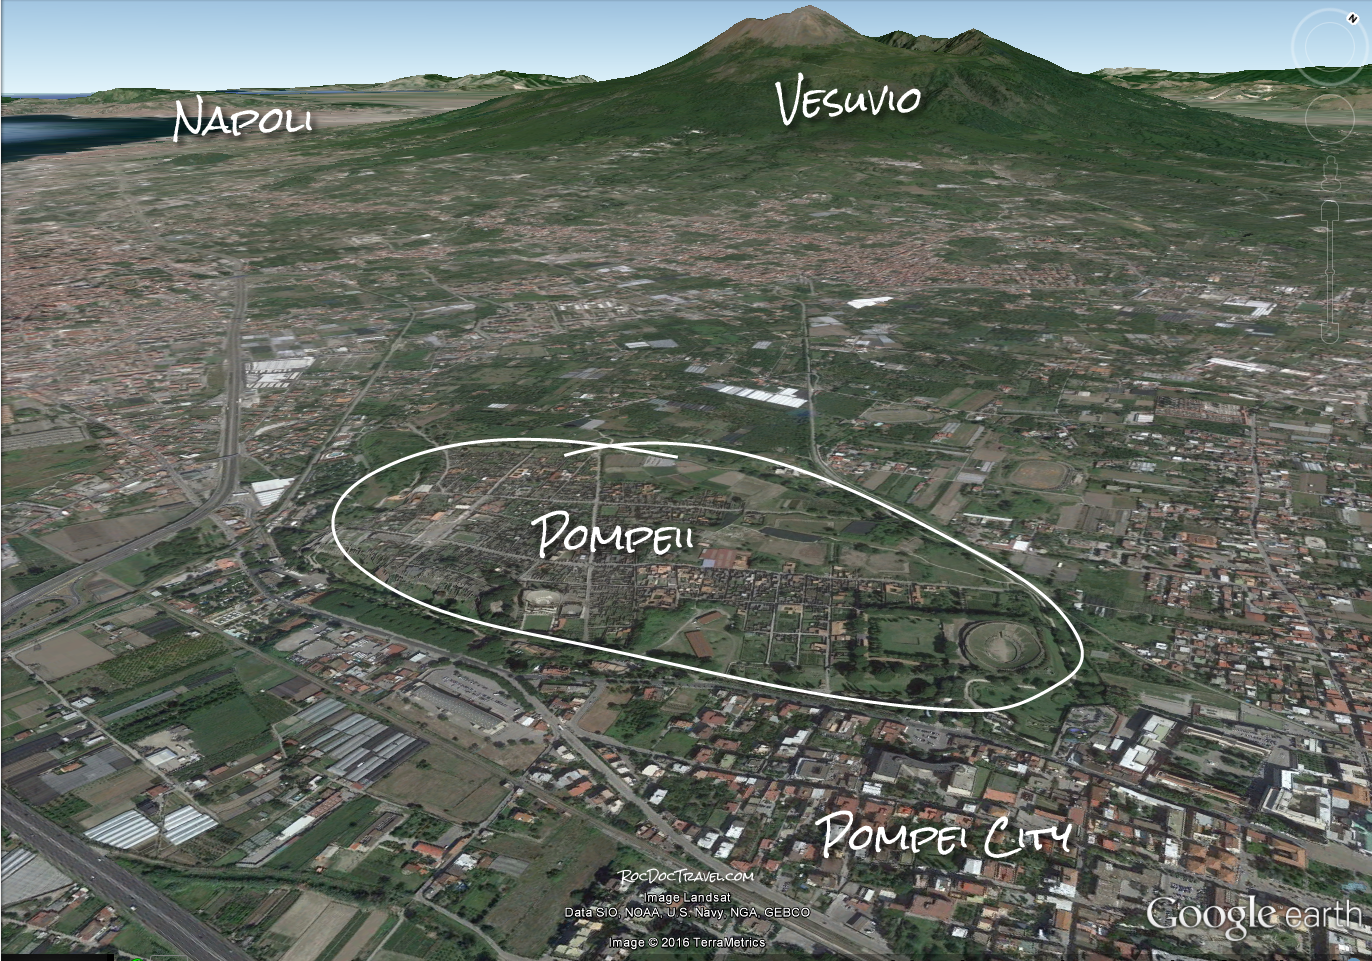 Google earth view of pompeii and vesuvius pyroclastic flows google earth view of pompeii and vesuvius pyroclastic flows avalanched 10 miles down the slopes publicscrutiny Image collections